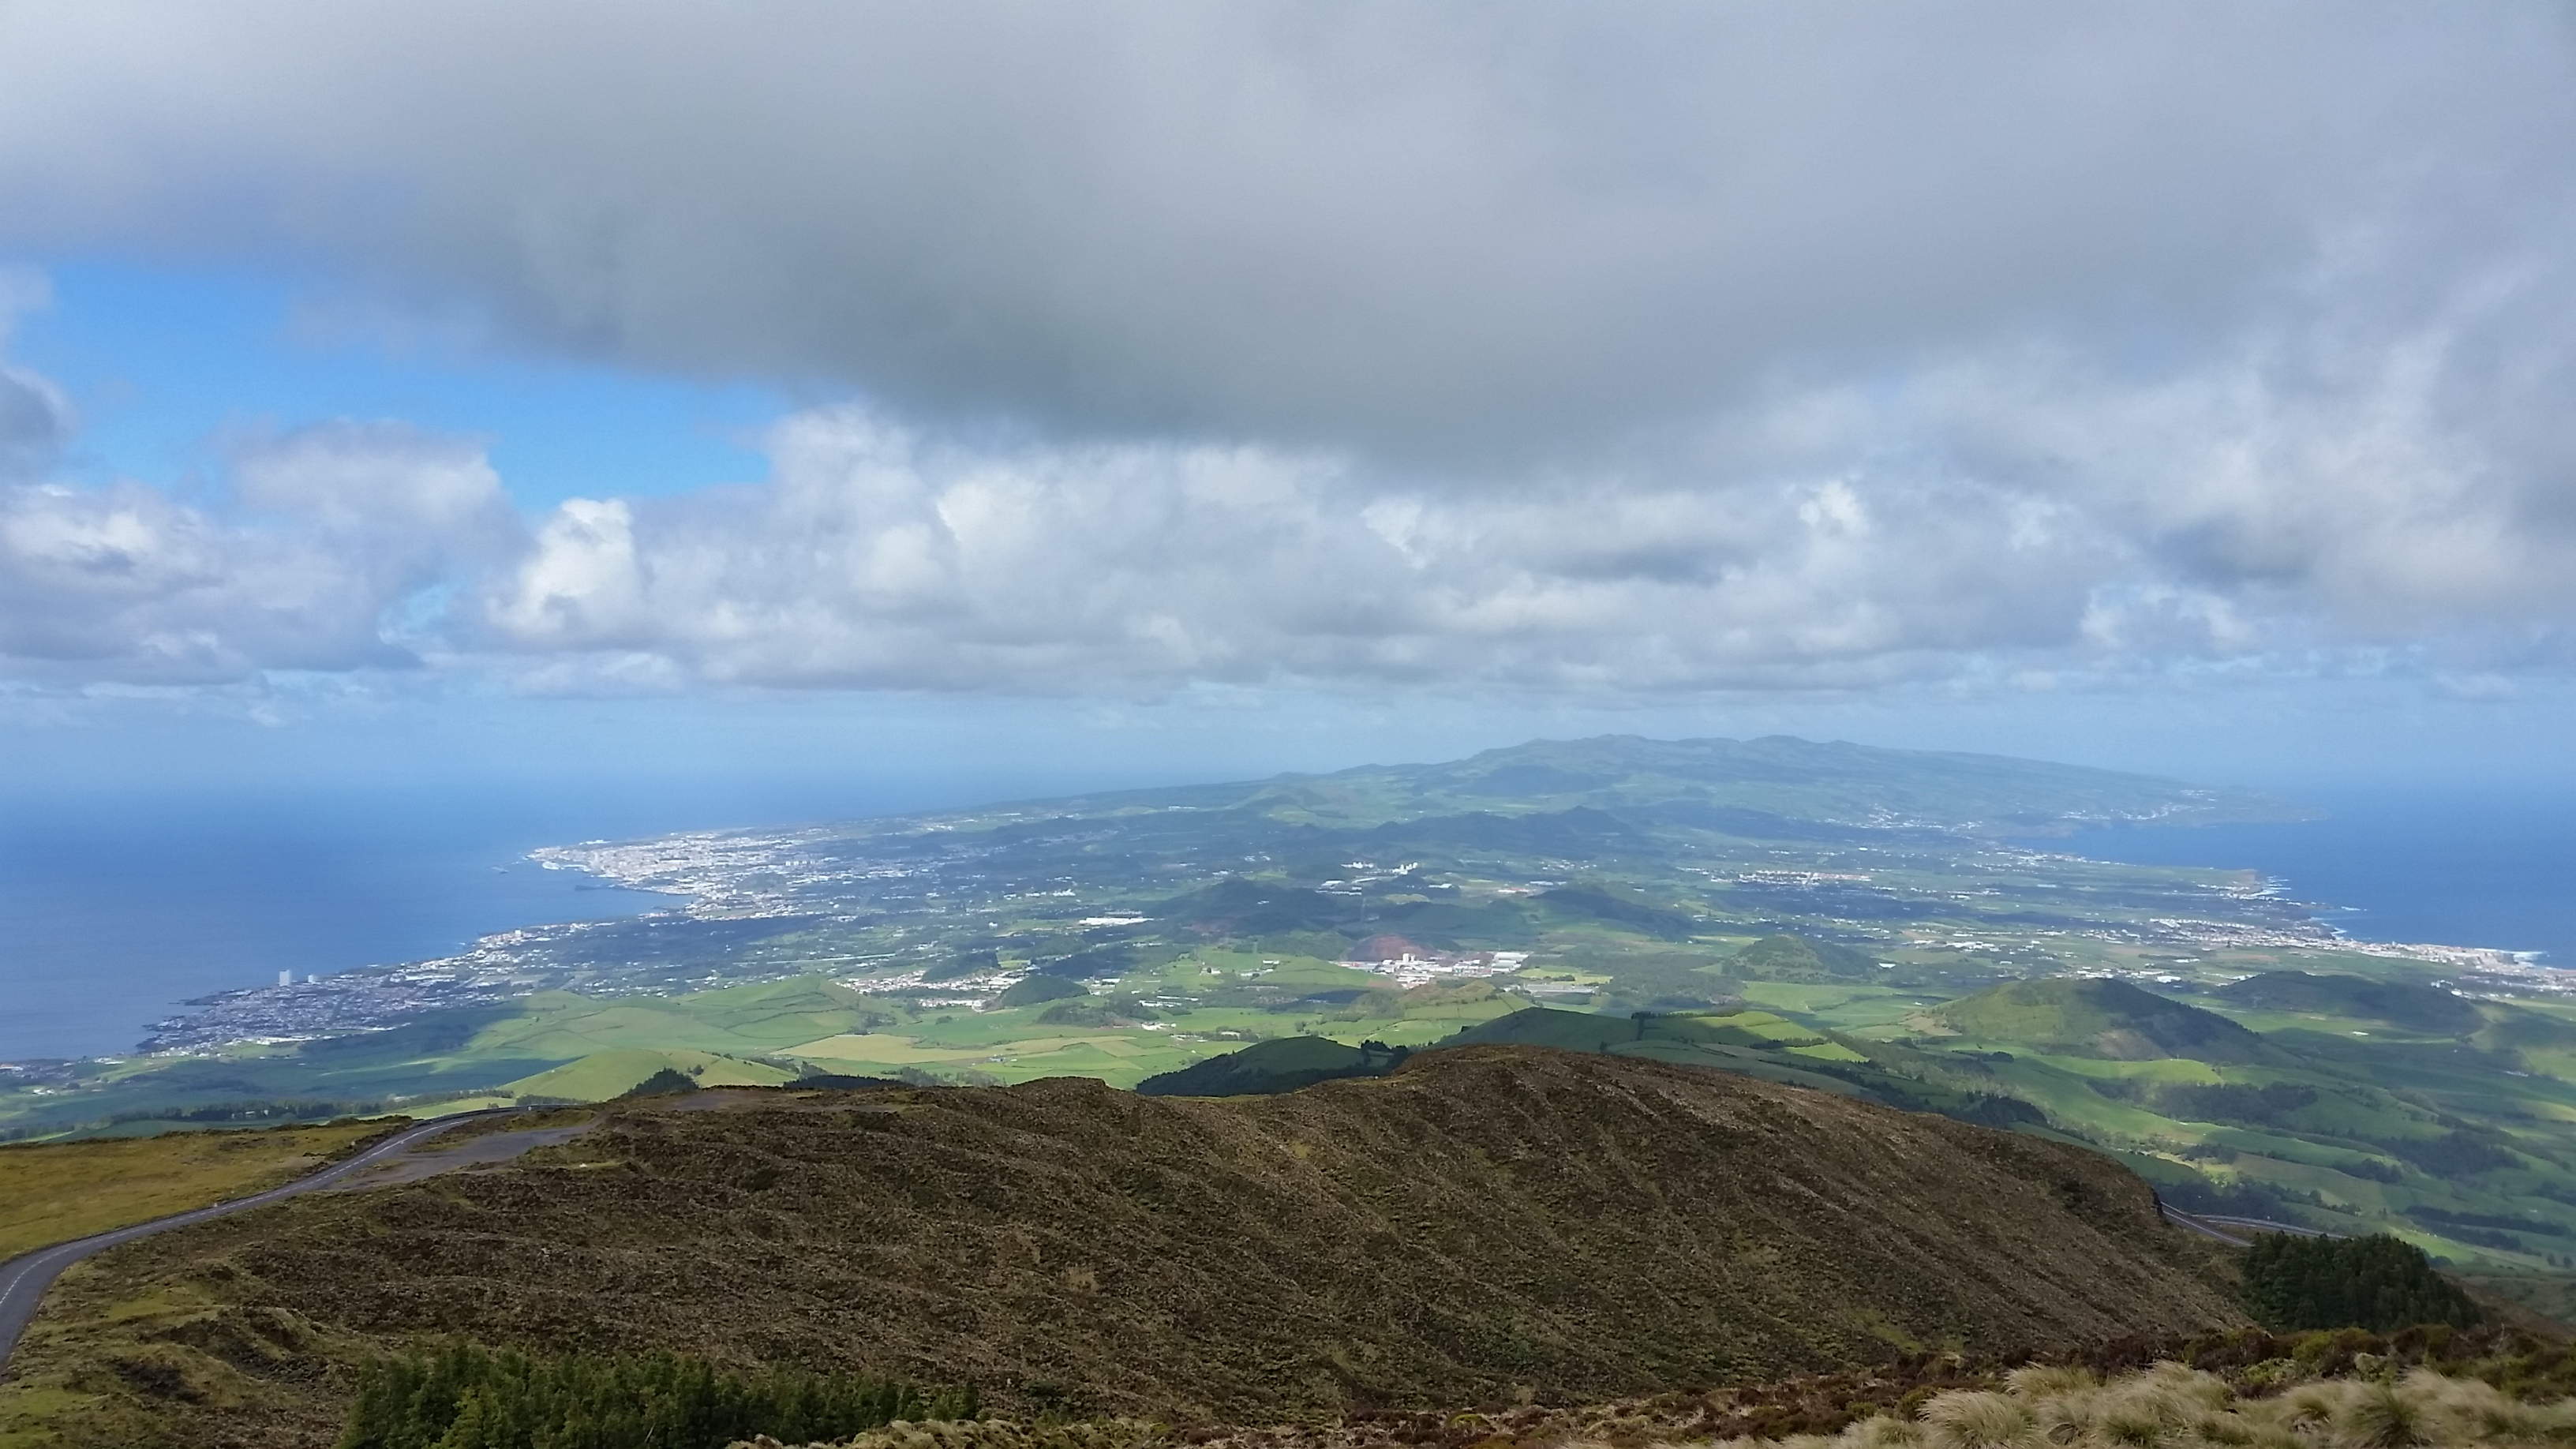 Top of Pico da Barrosa (Sao Miguel island)